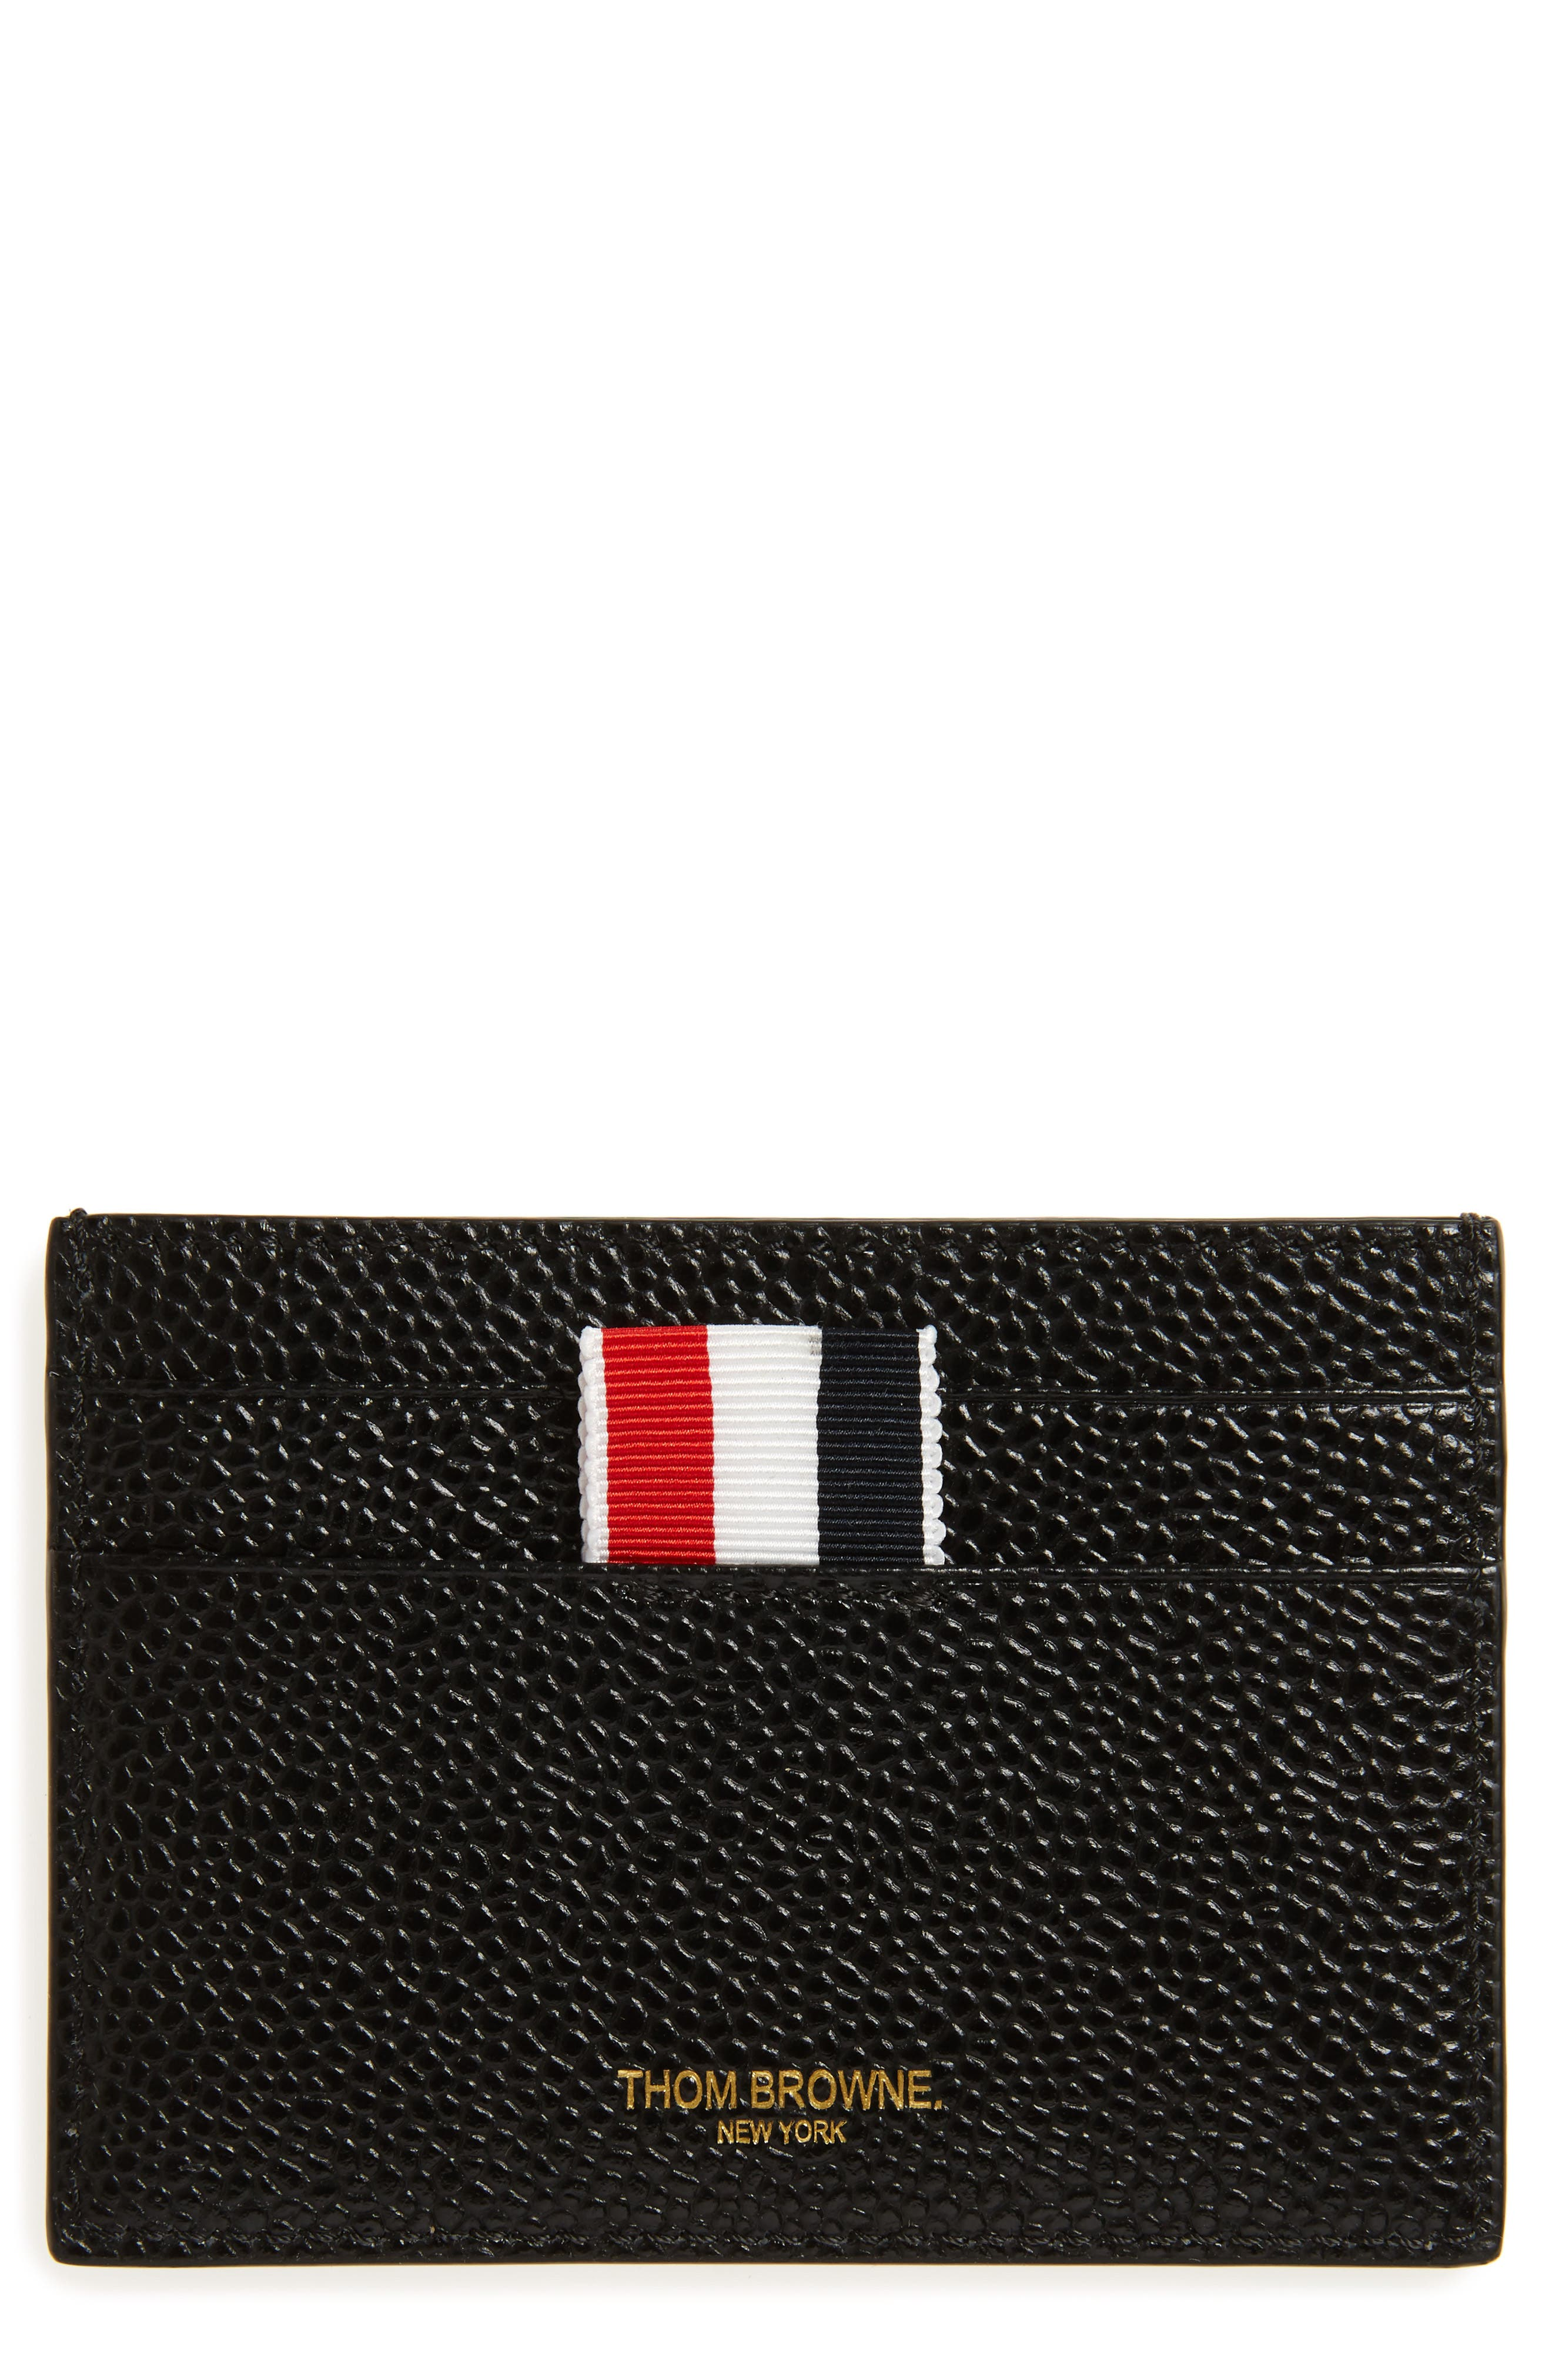 Thom Browne Patent Leather Card Case